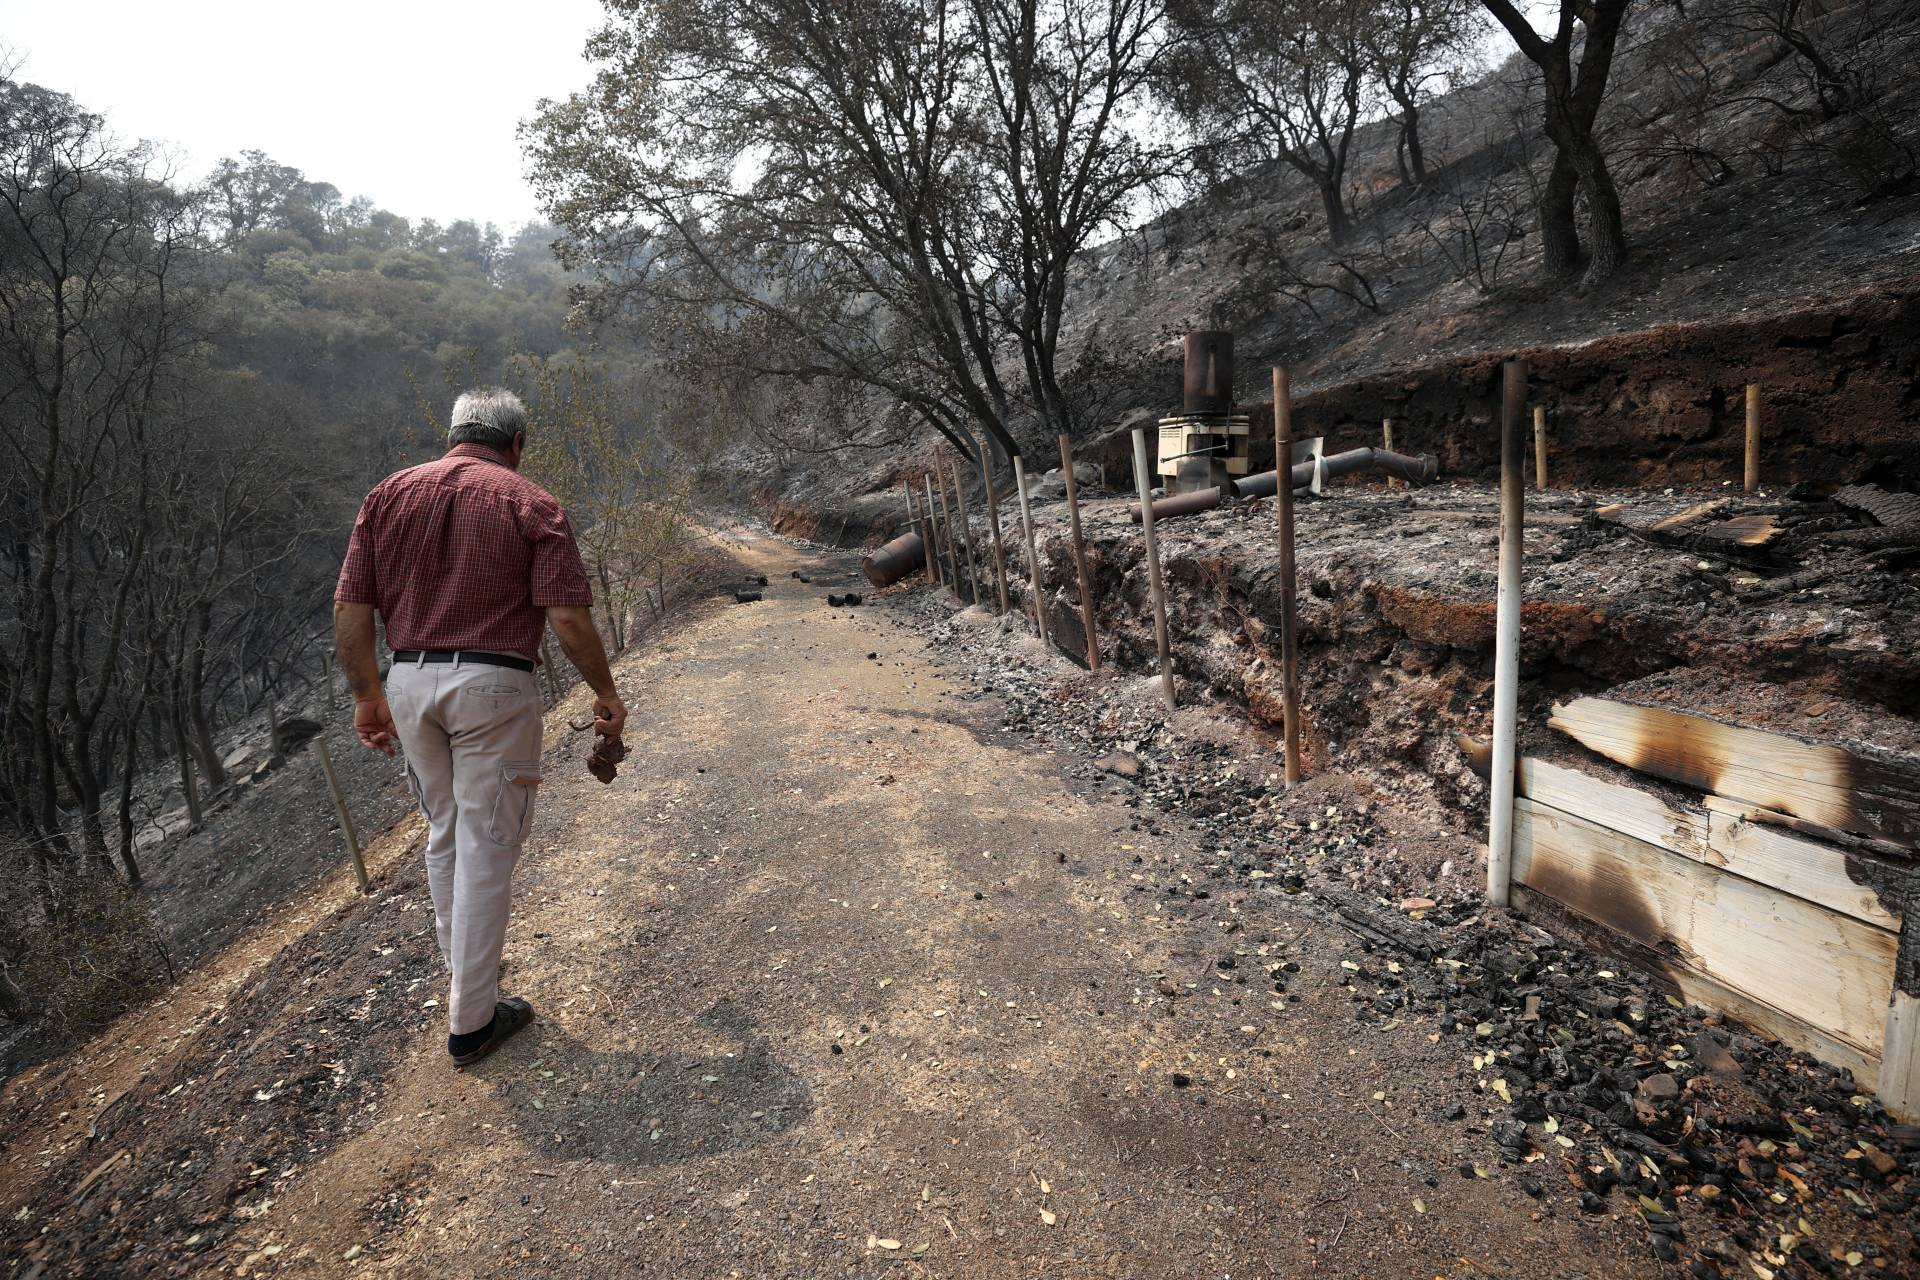 Sid Torun, owner of M.S. Torun Family Vineyards, walks through a portion of his property that was burned by the LNU Lightning Complex fire on August 24, 2020 in Vacaville, California.  Justin Sullivan/Getty Images